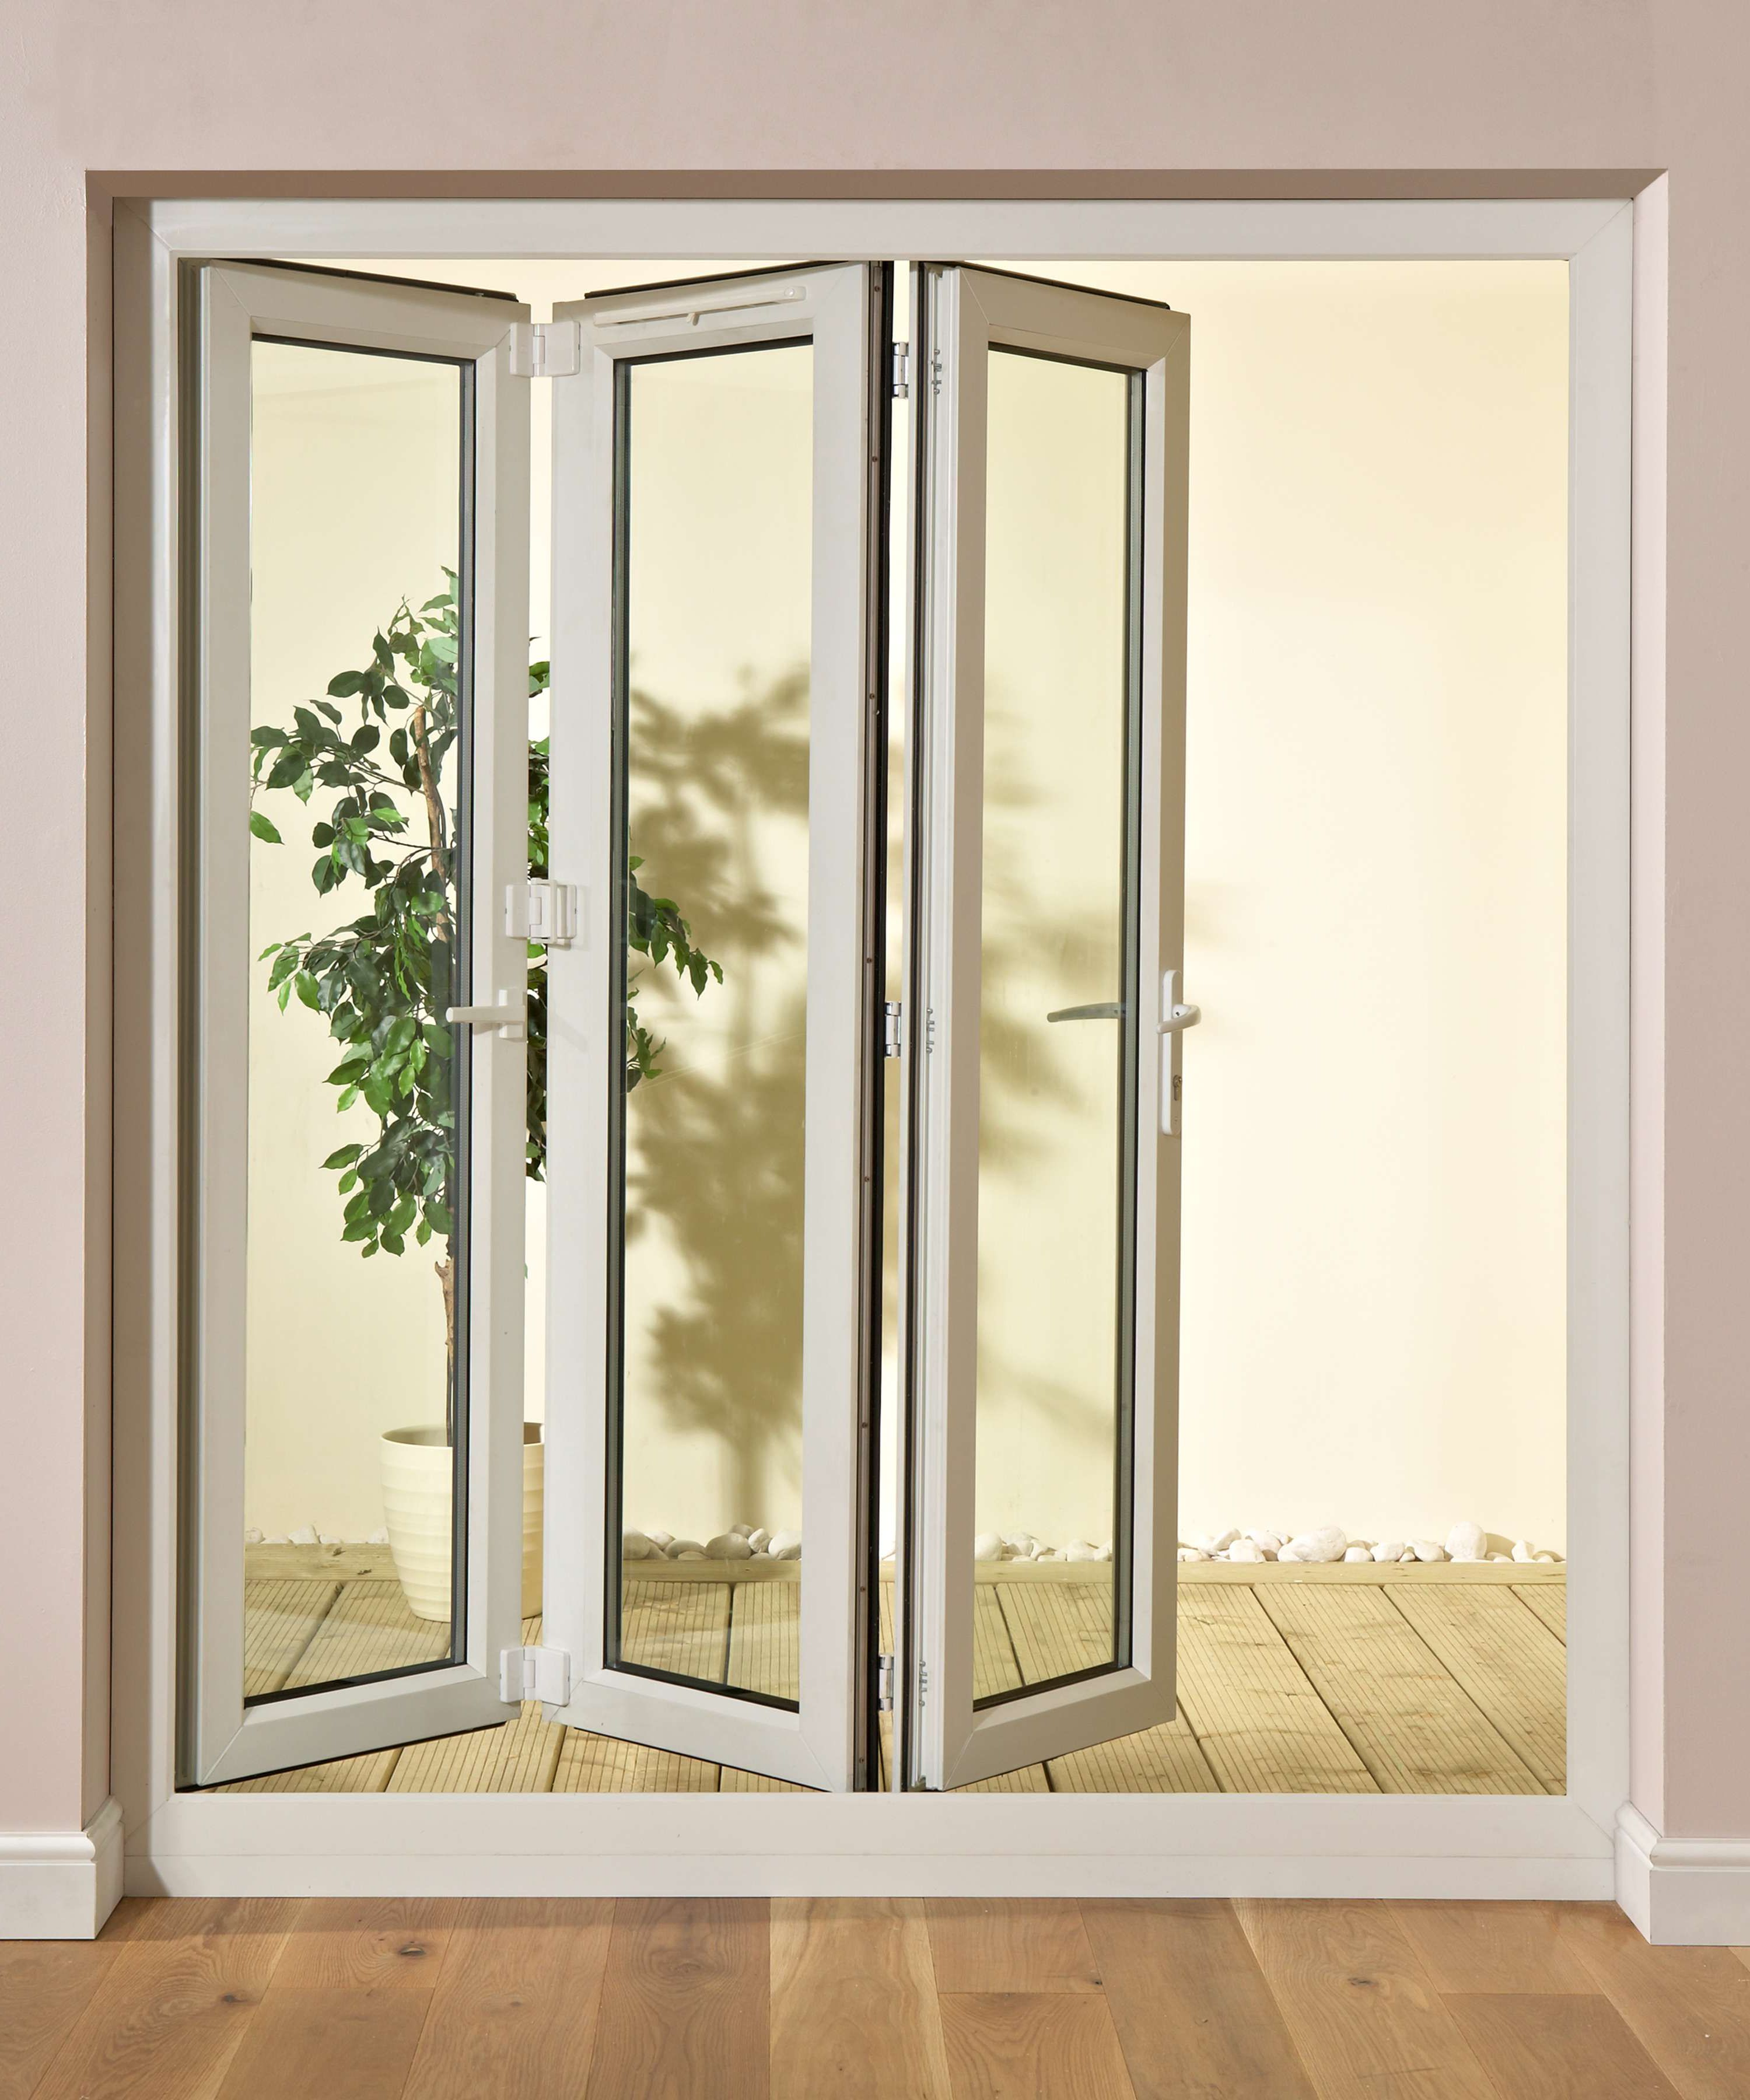 Sliding door – upvc bi-fold